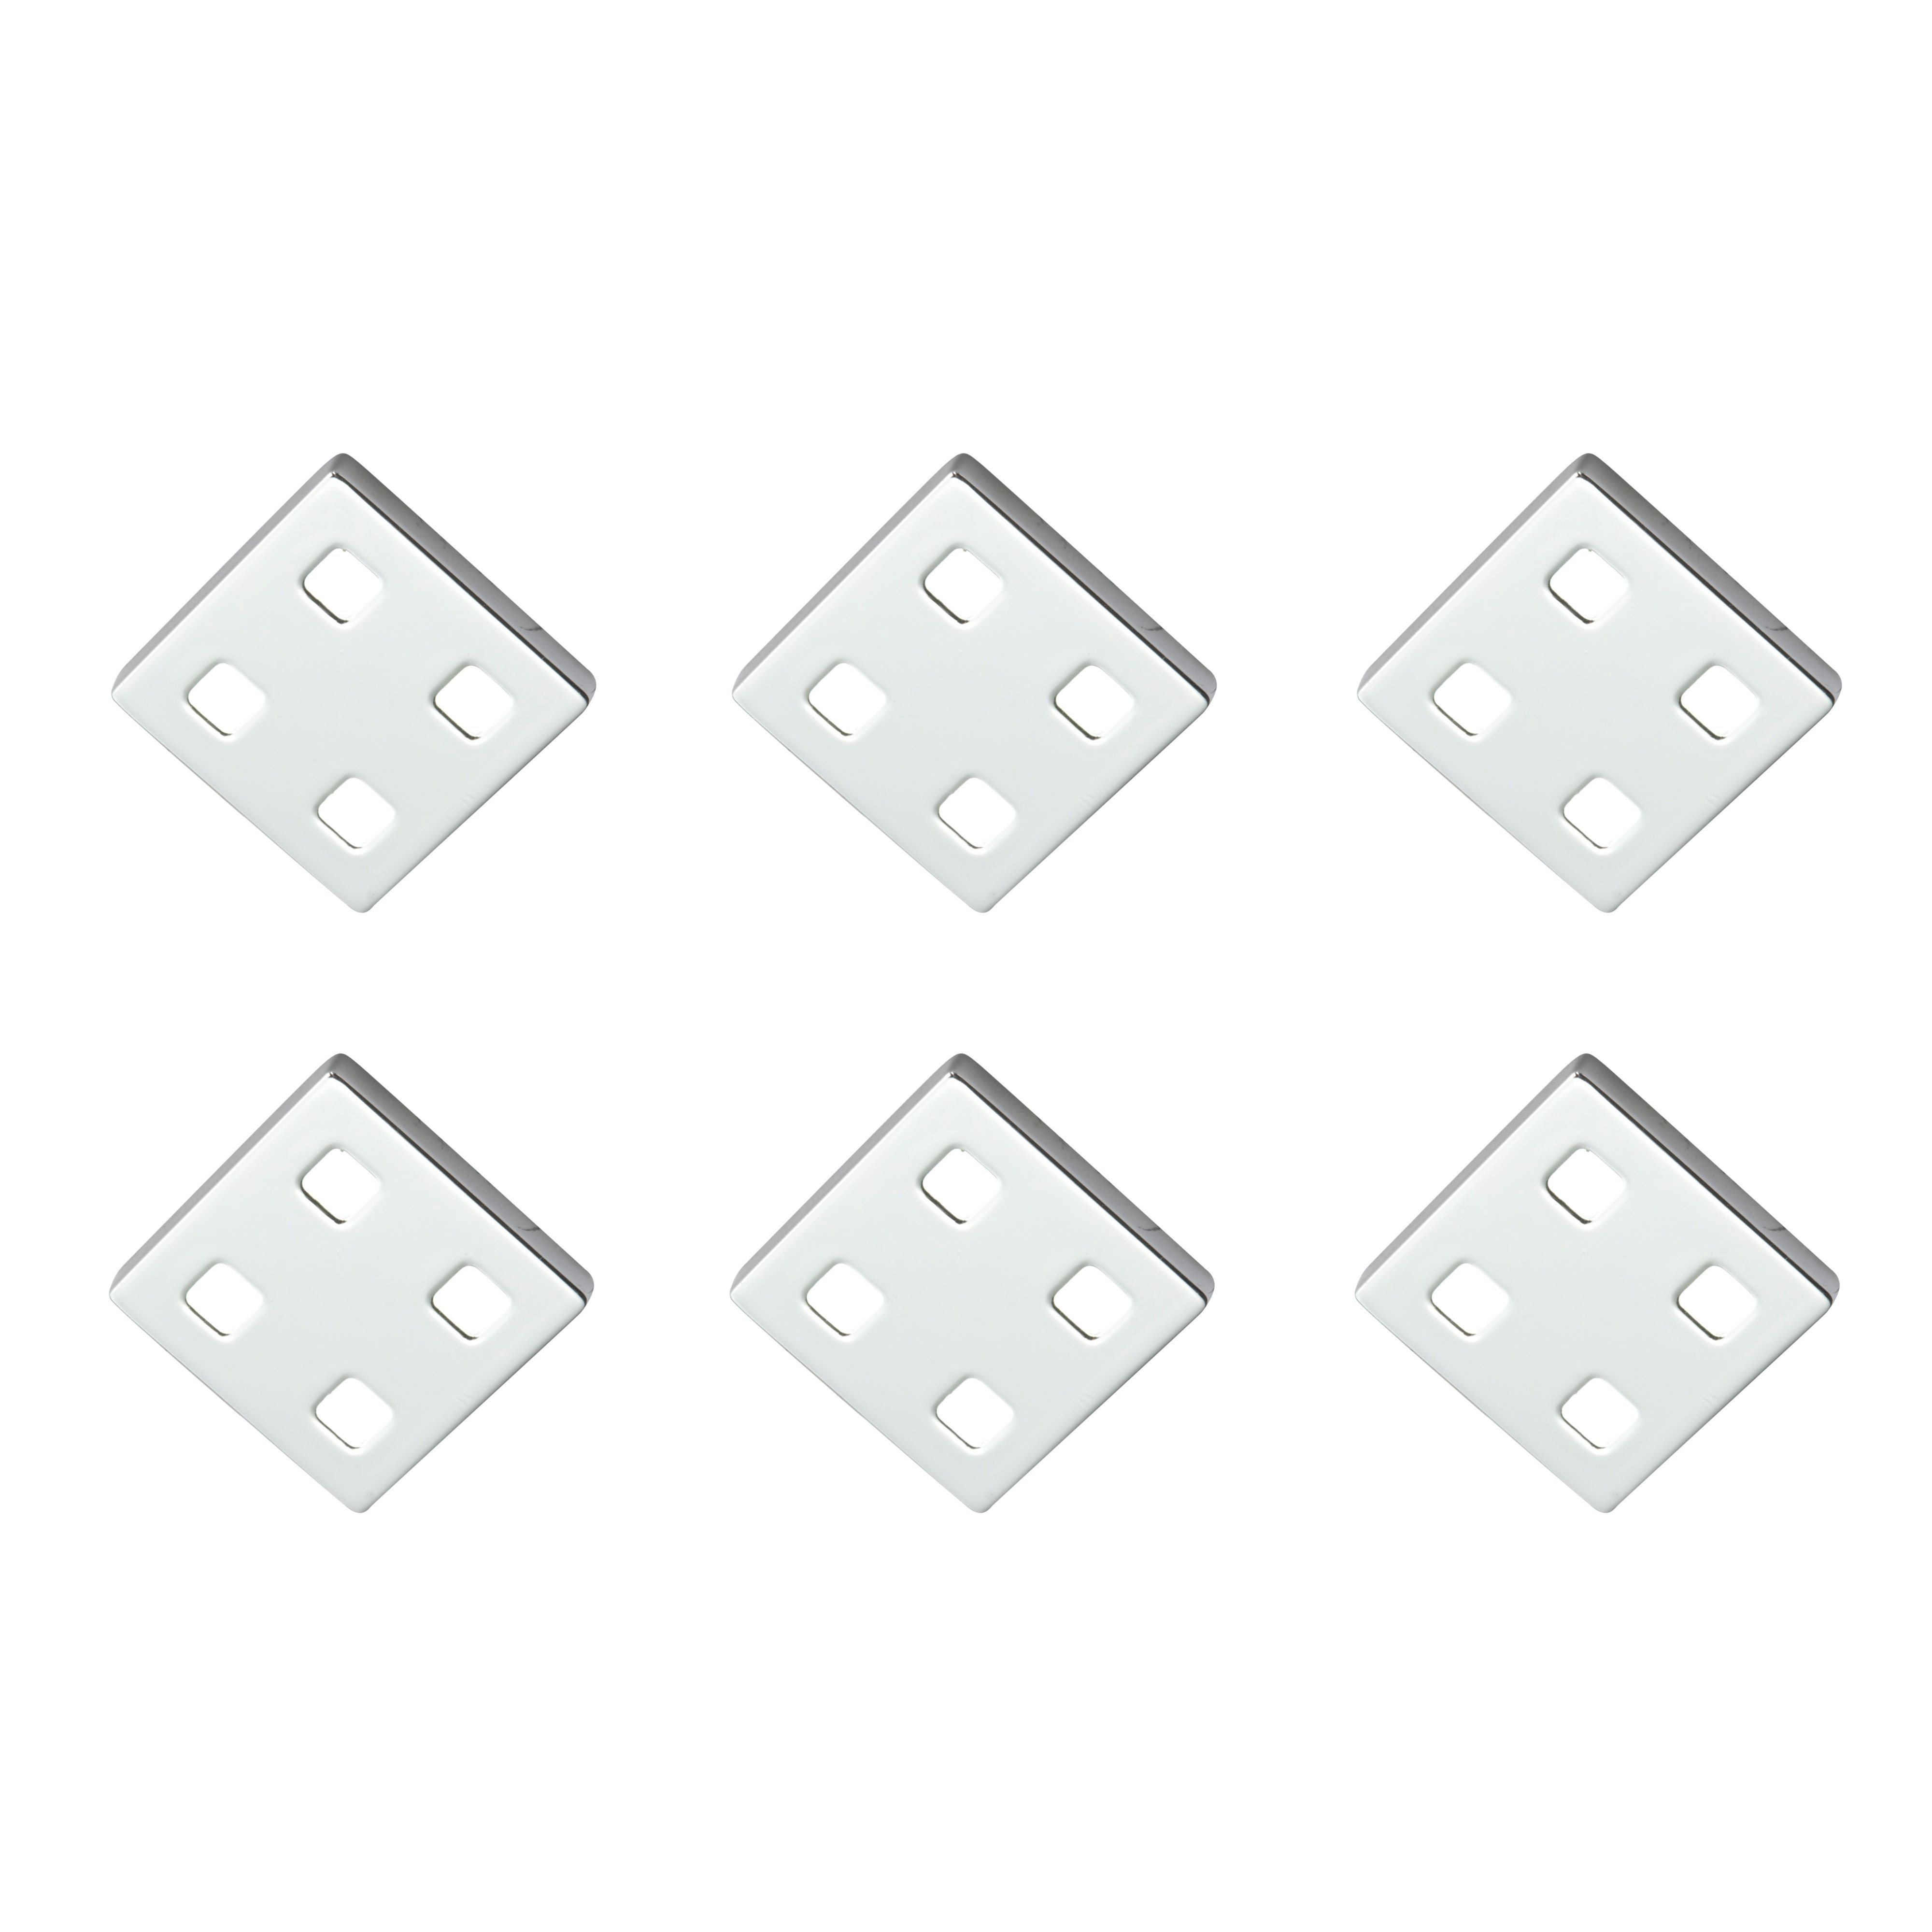 Masterlite Mains Powered Led Cabinet Light, Pack Of 6